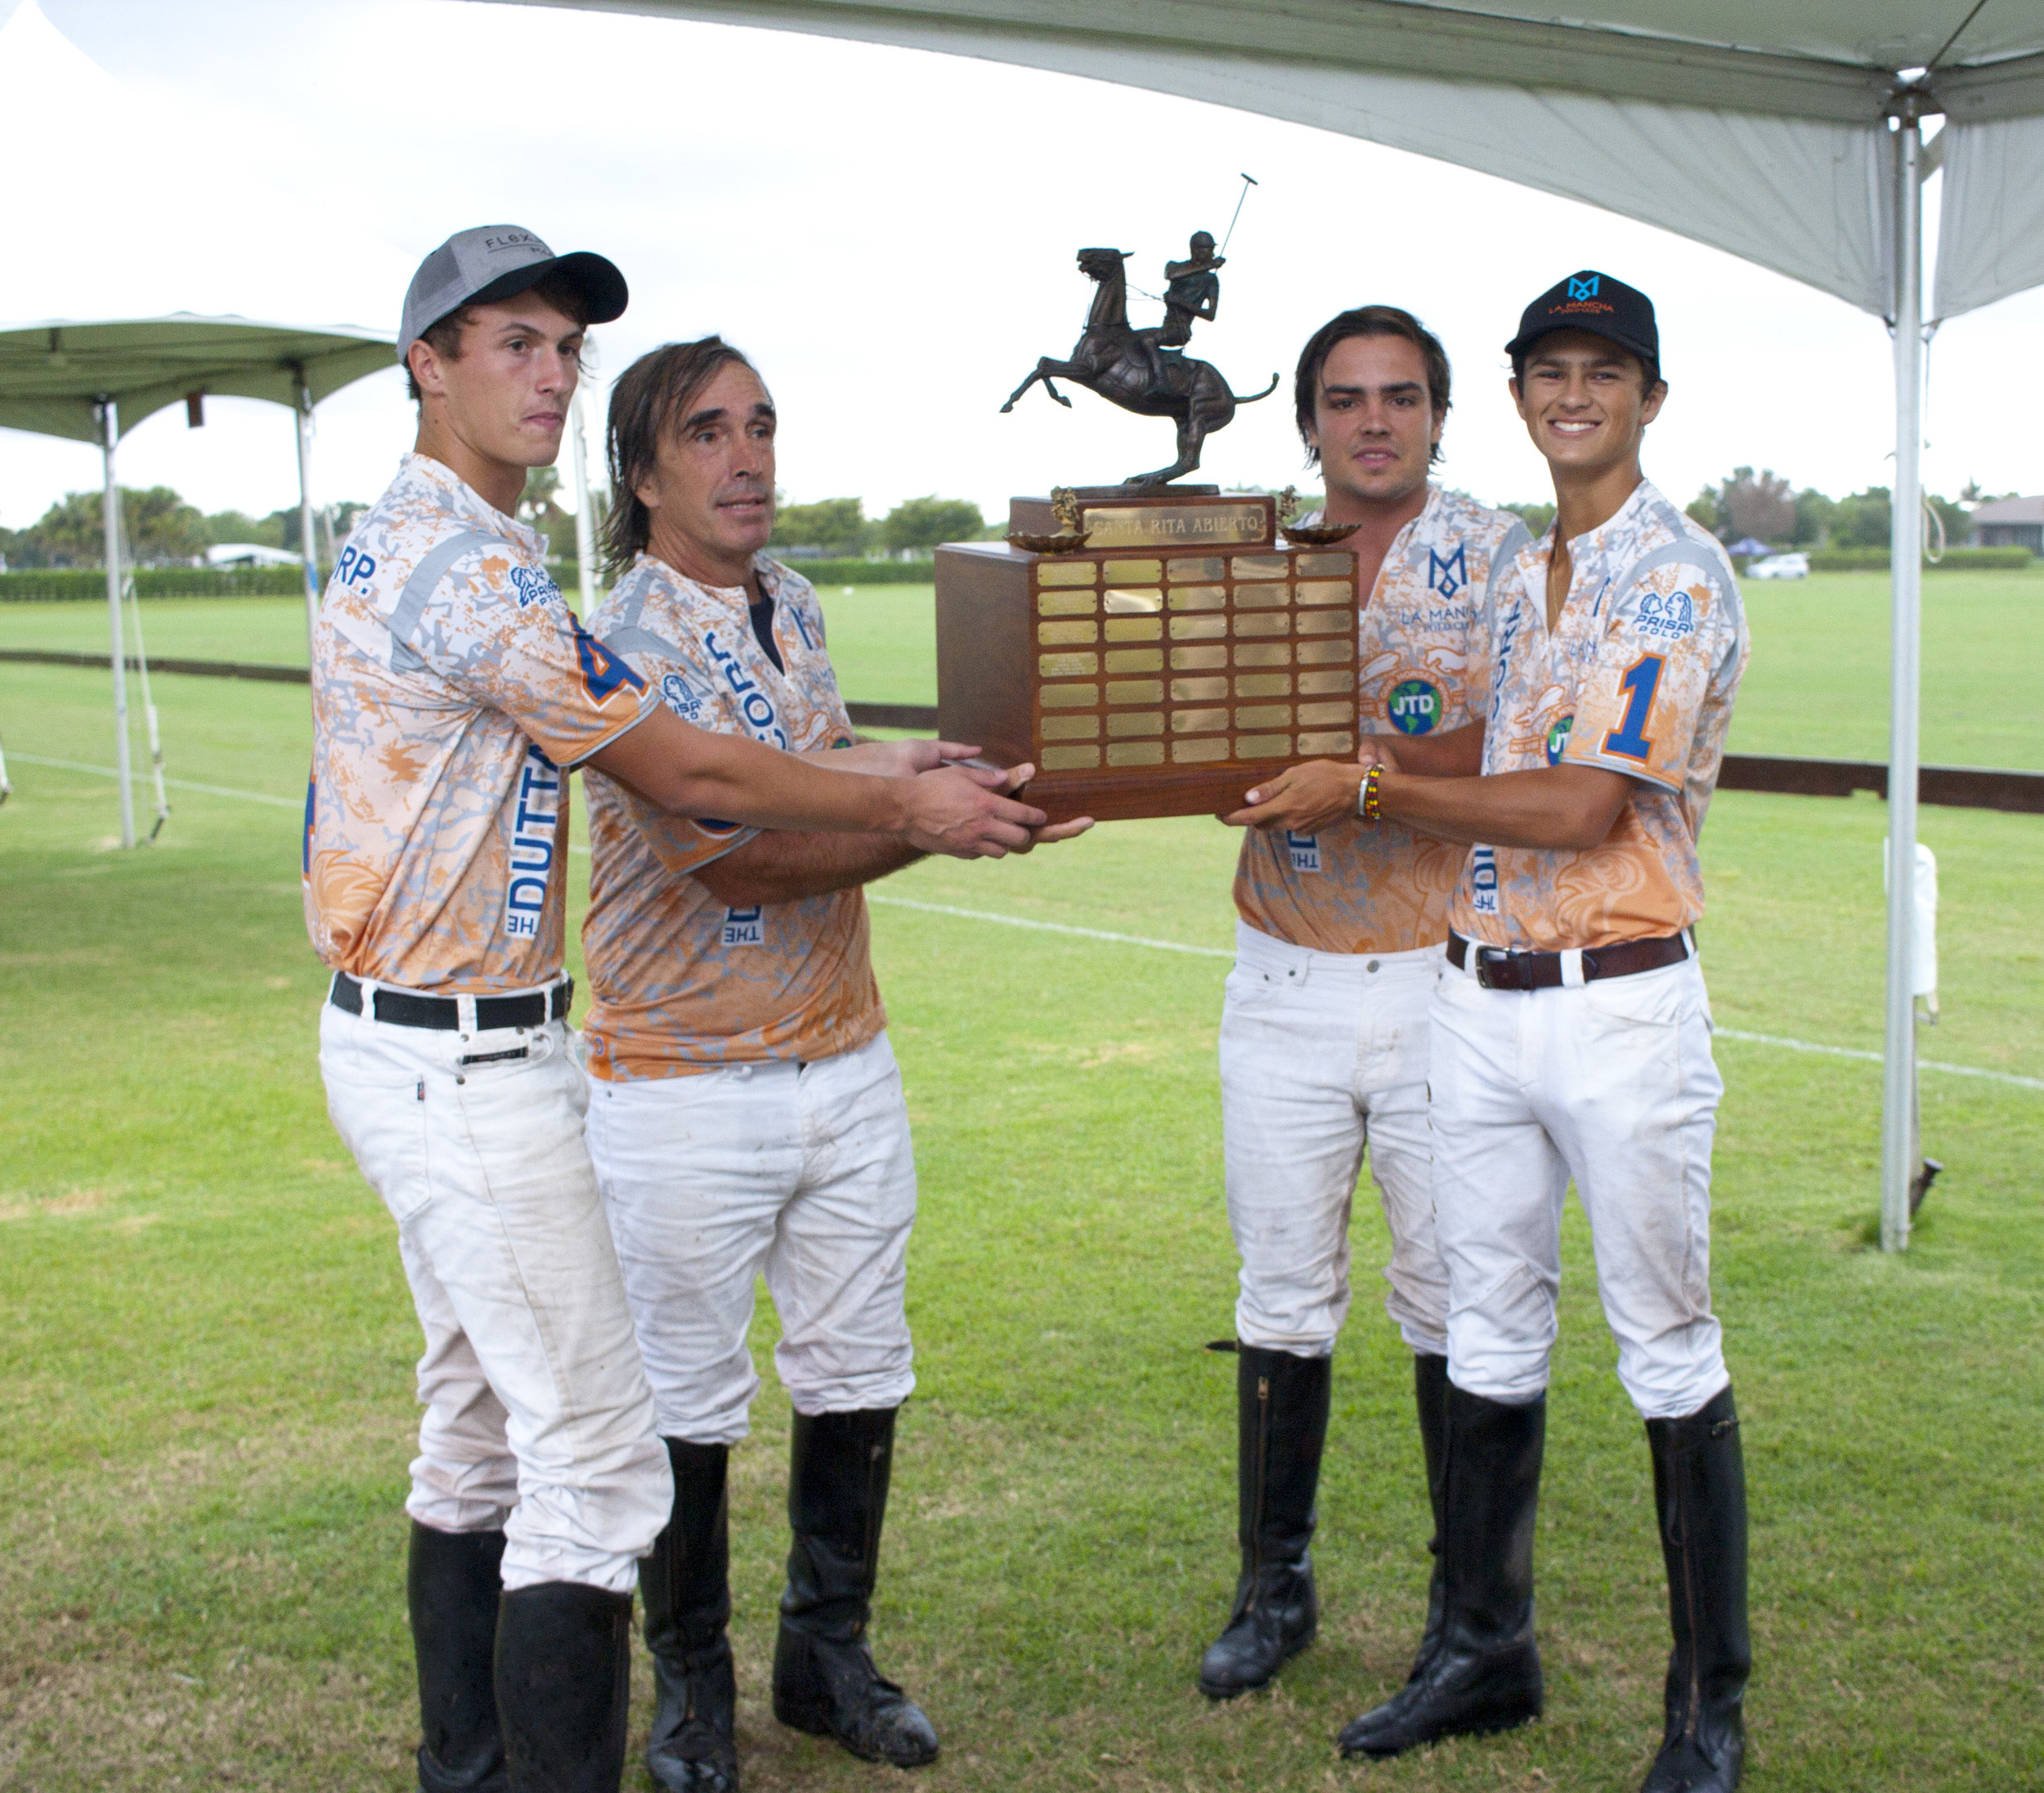 Dutta Corp three-peats Santa Rita Abierto with Alex Webb, Piki Alberdi, Lucas Alberdi and MVP Timmy Dutta.